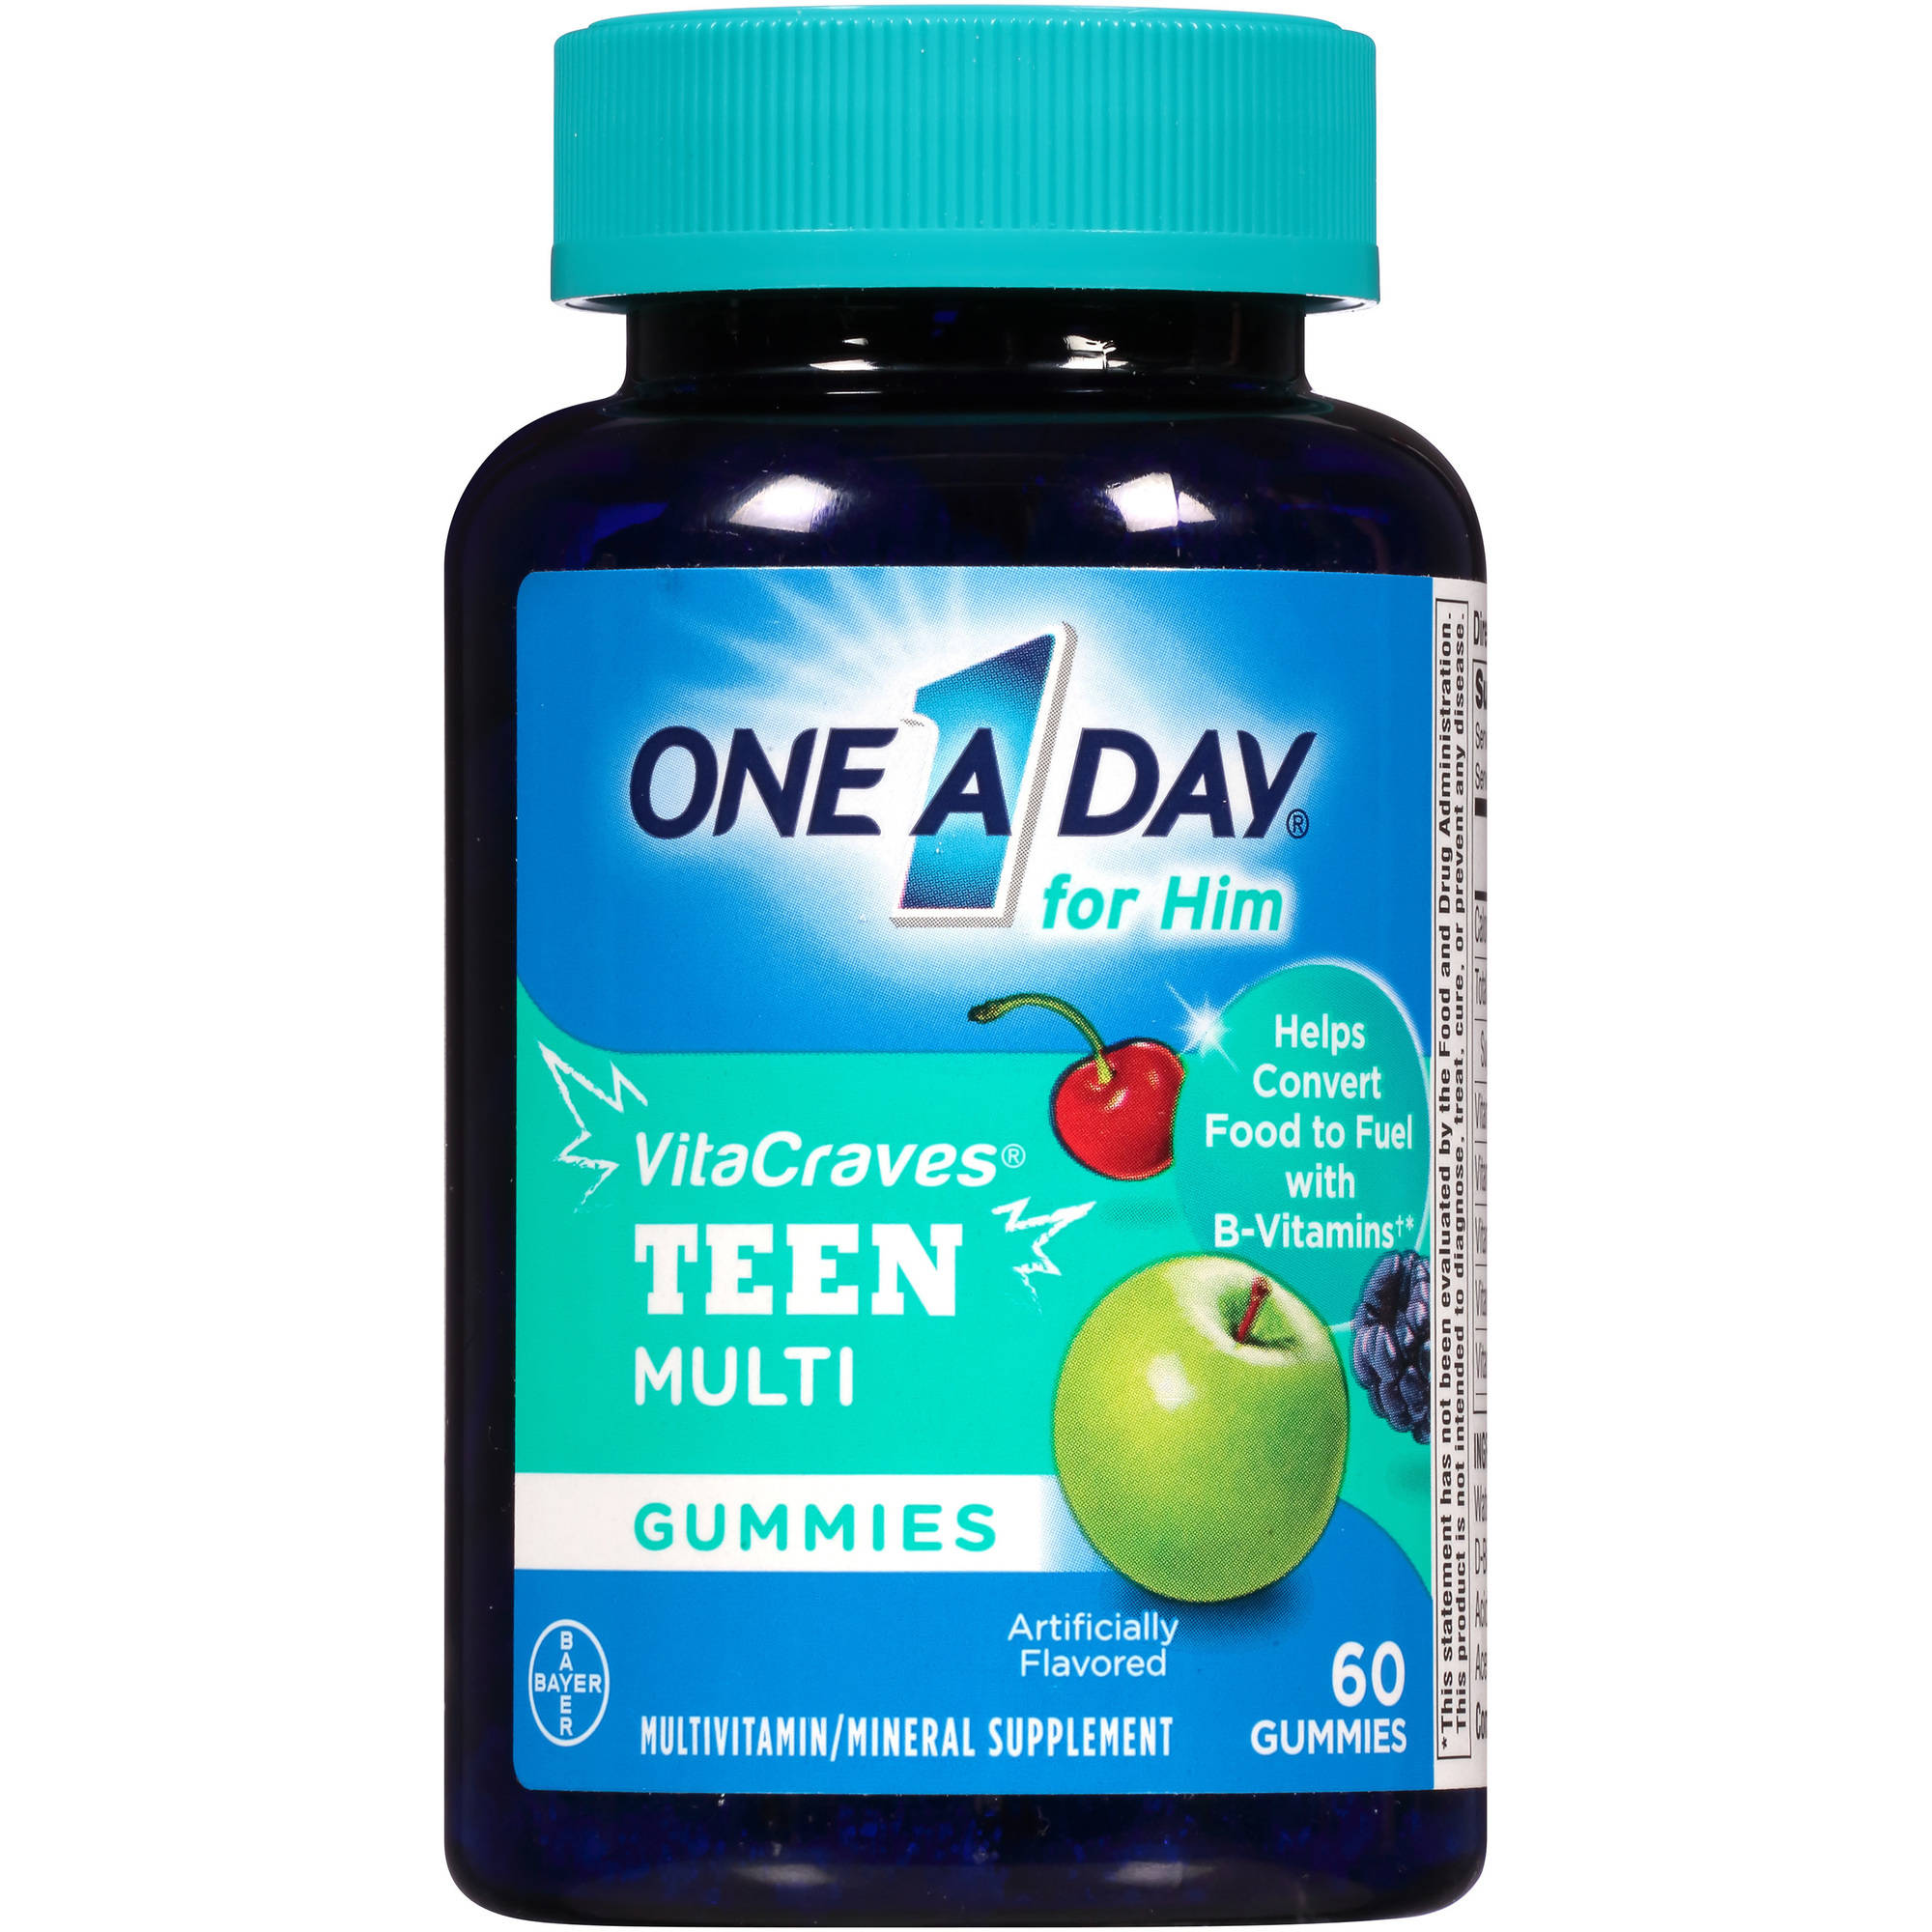 One a Day for HIm VitaCraves Teen Multivitamin/Mineral Supplement Gummies, 60 count